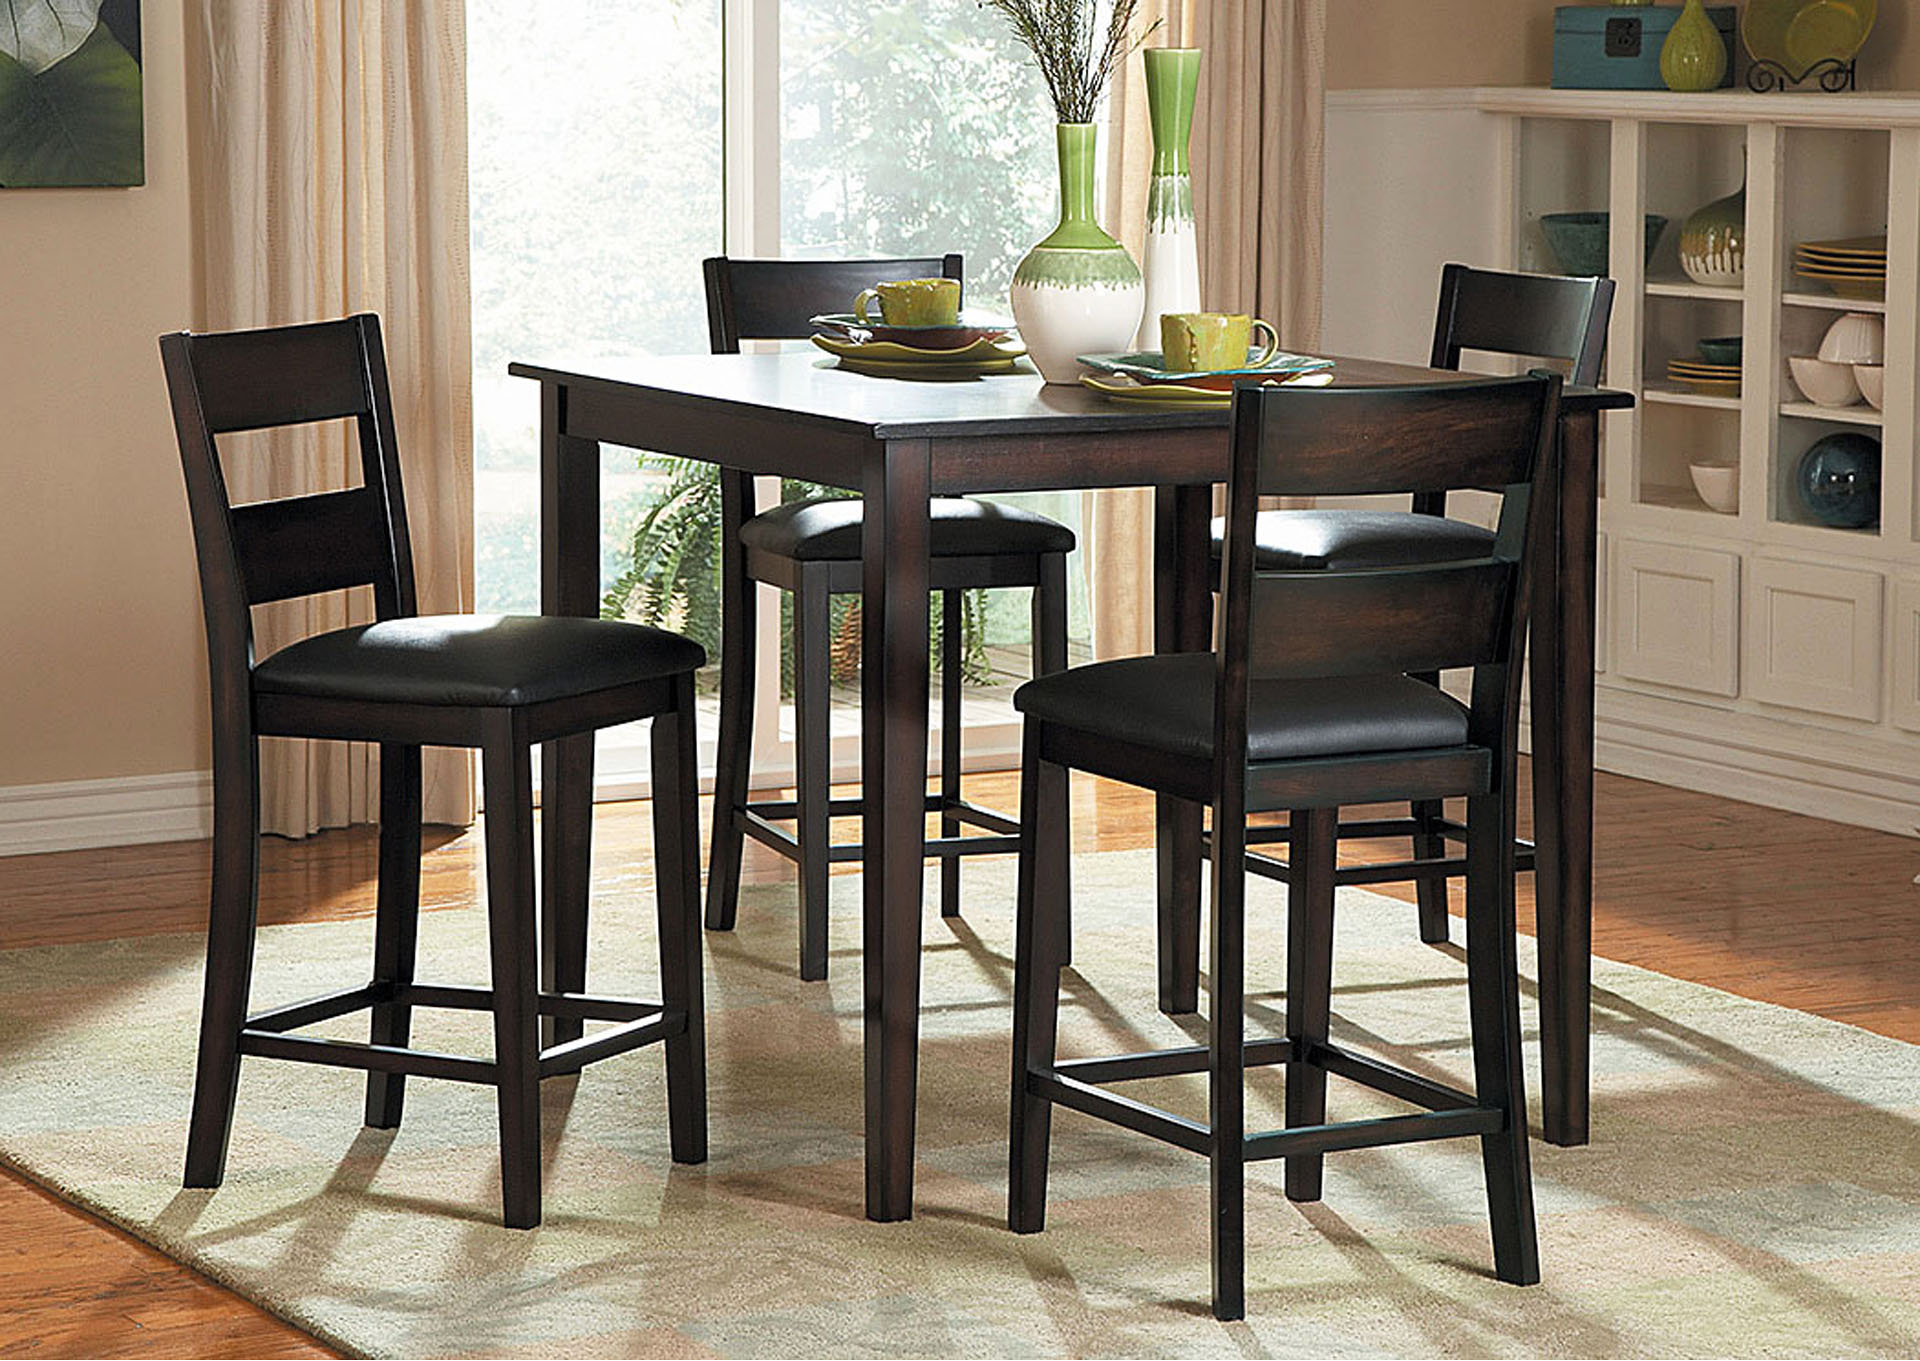 Griffin Counter Height Dining Table Set W/4 Side Chairs,Homelegance